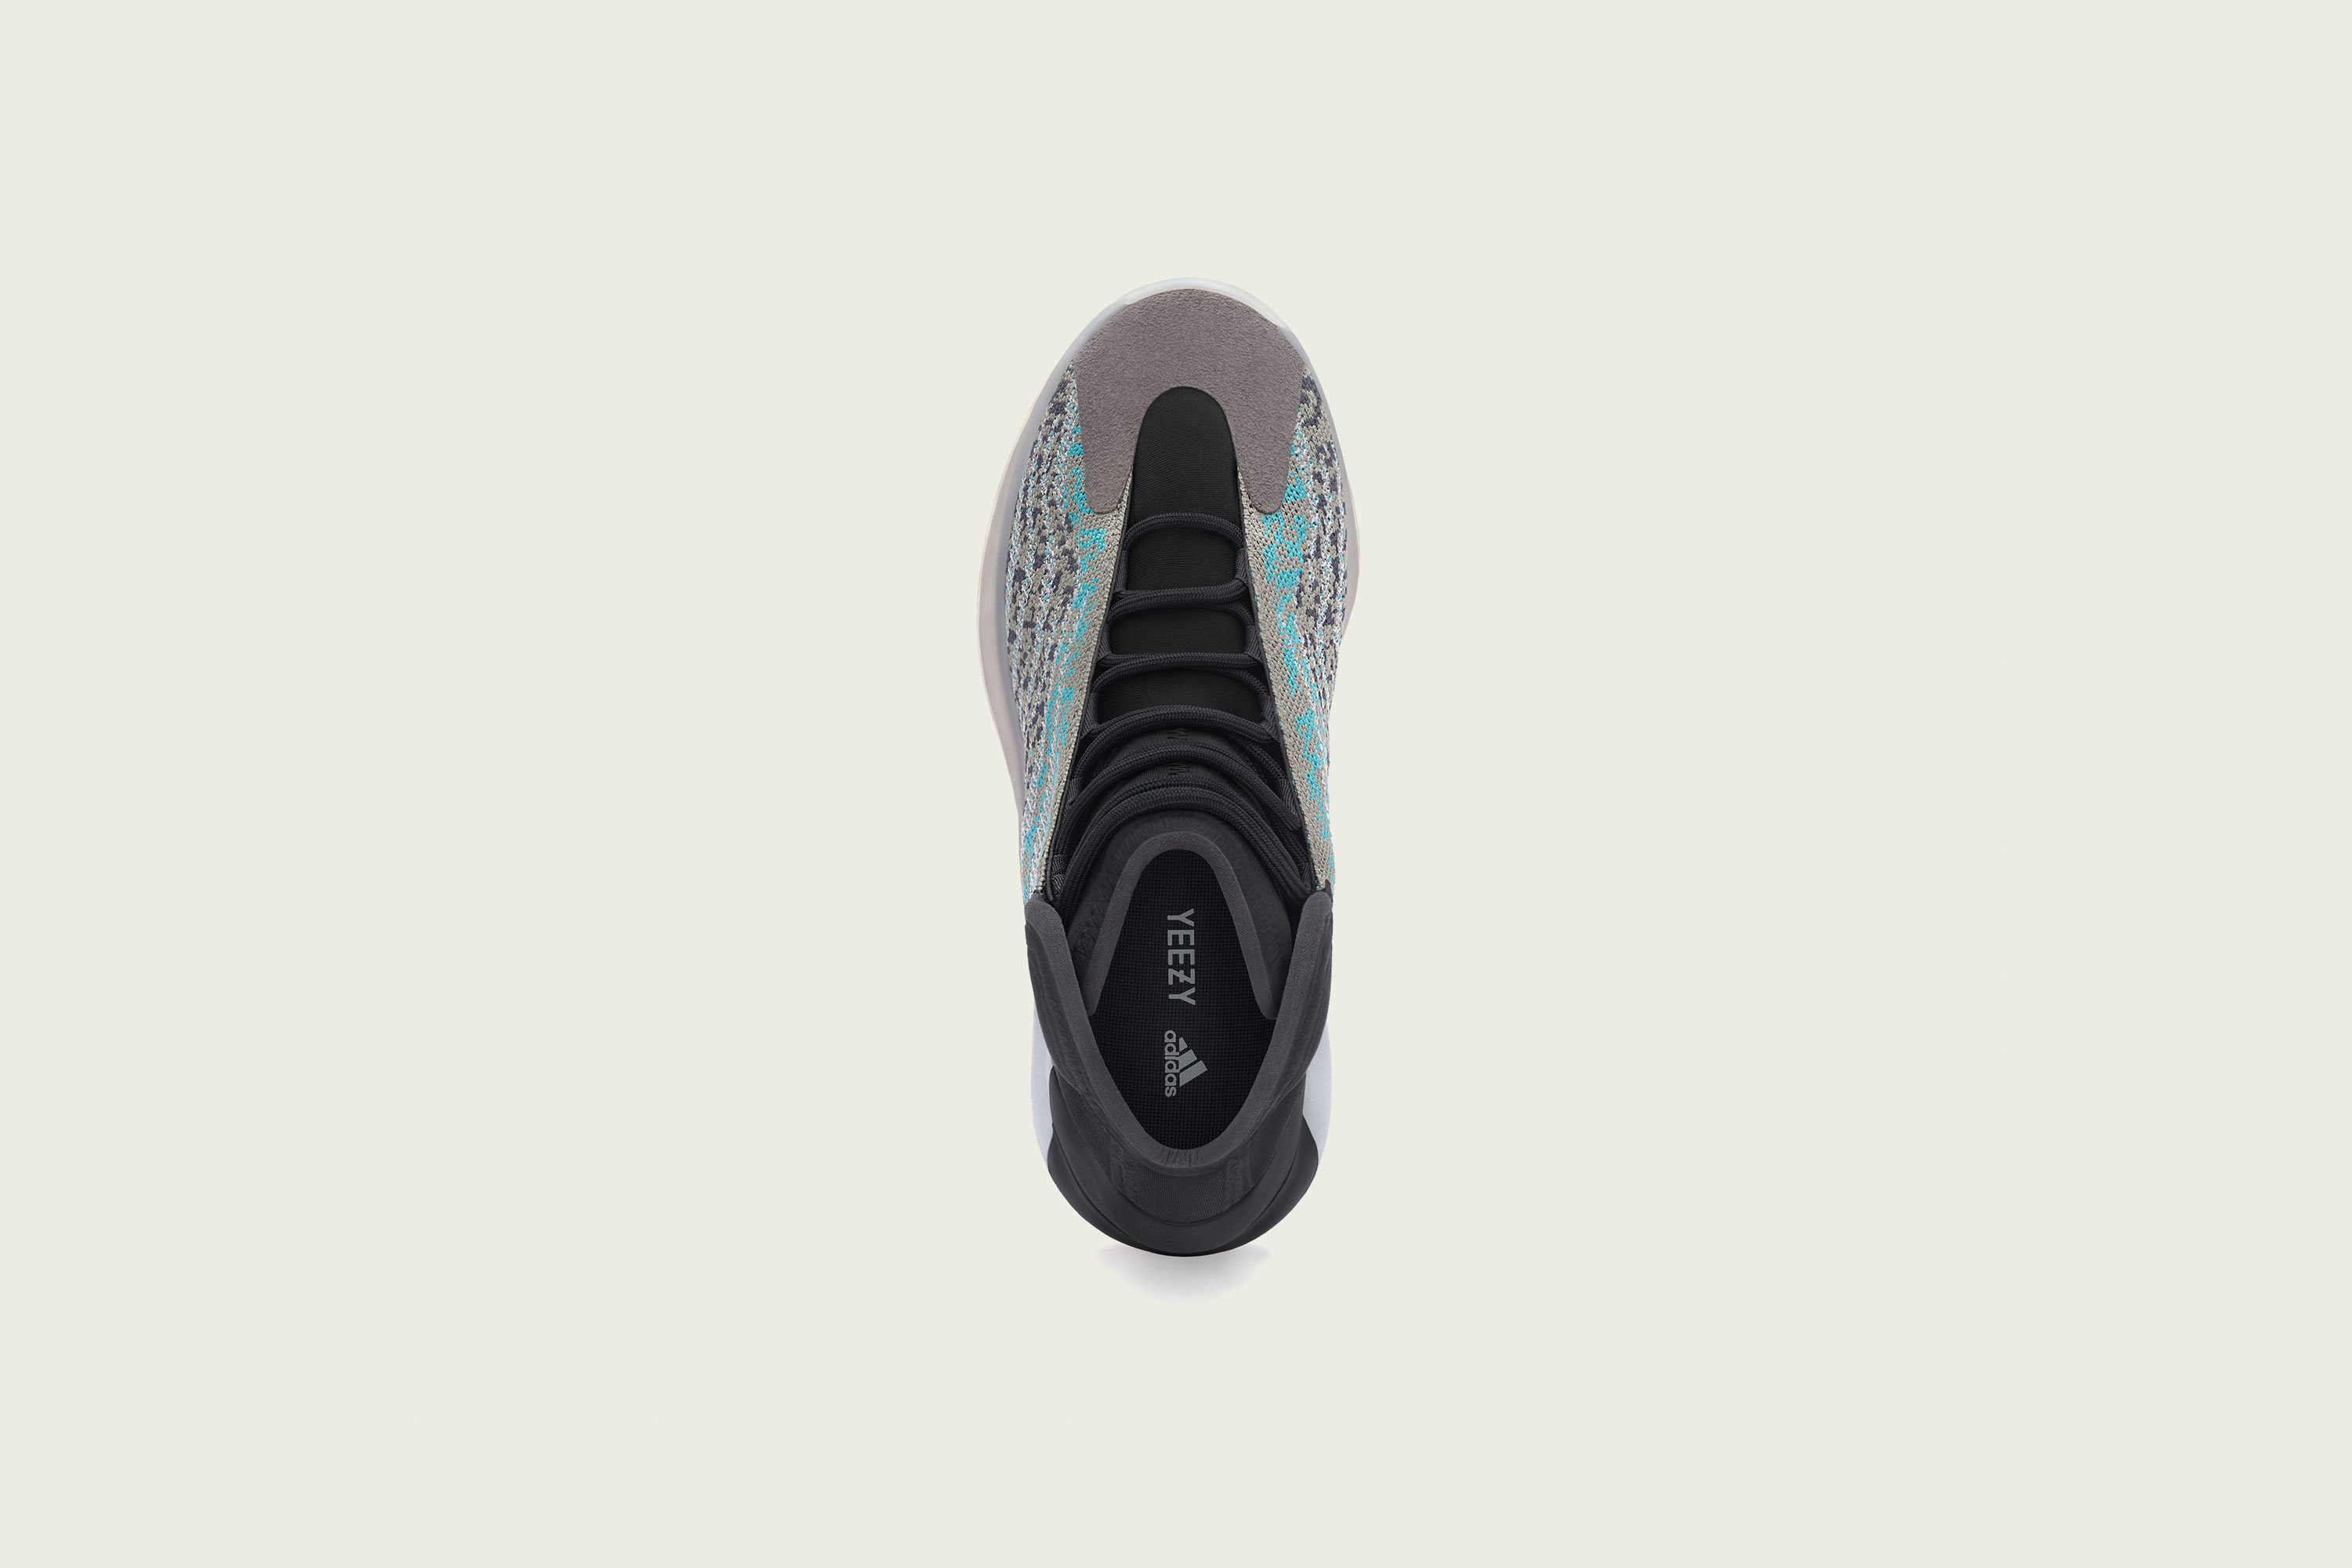 Up There Launches - Yeezy Boost QNTM 'Teal'